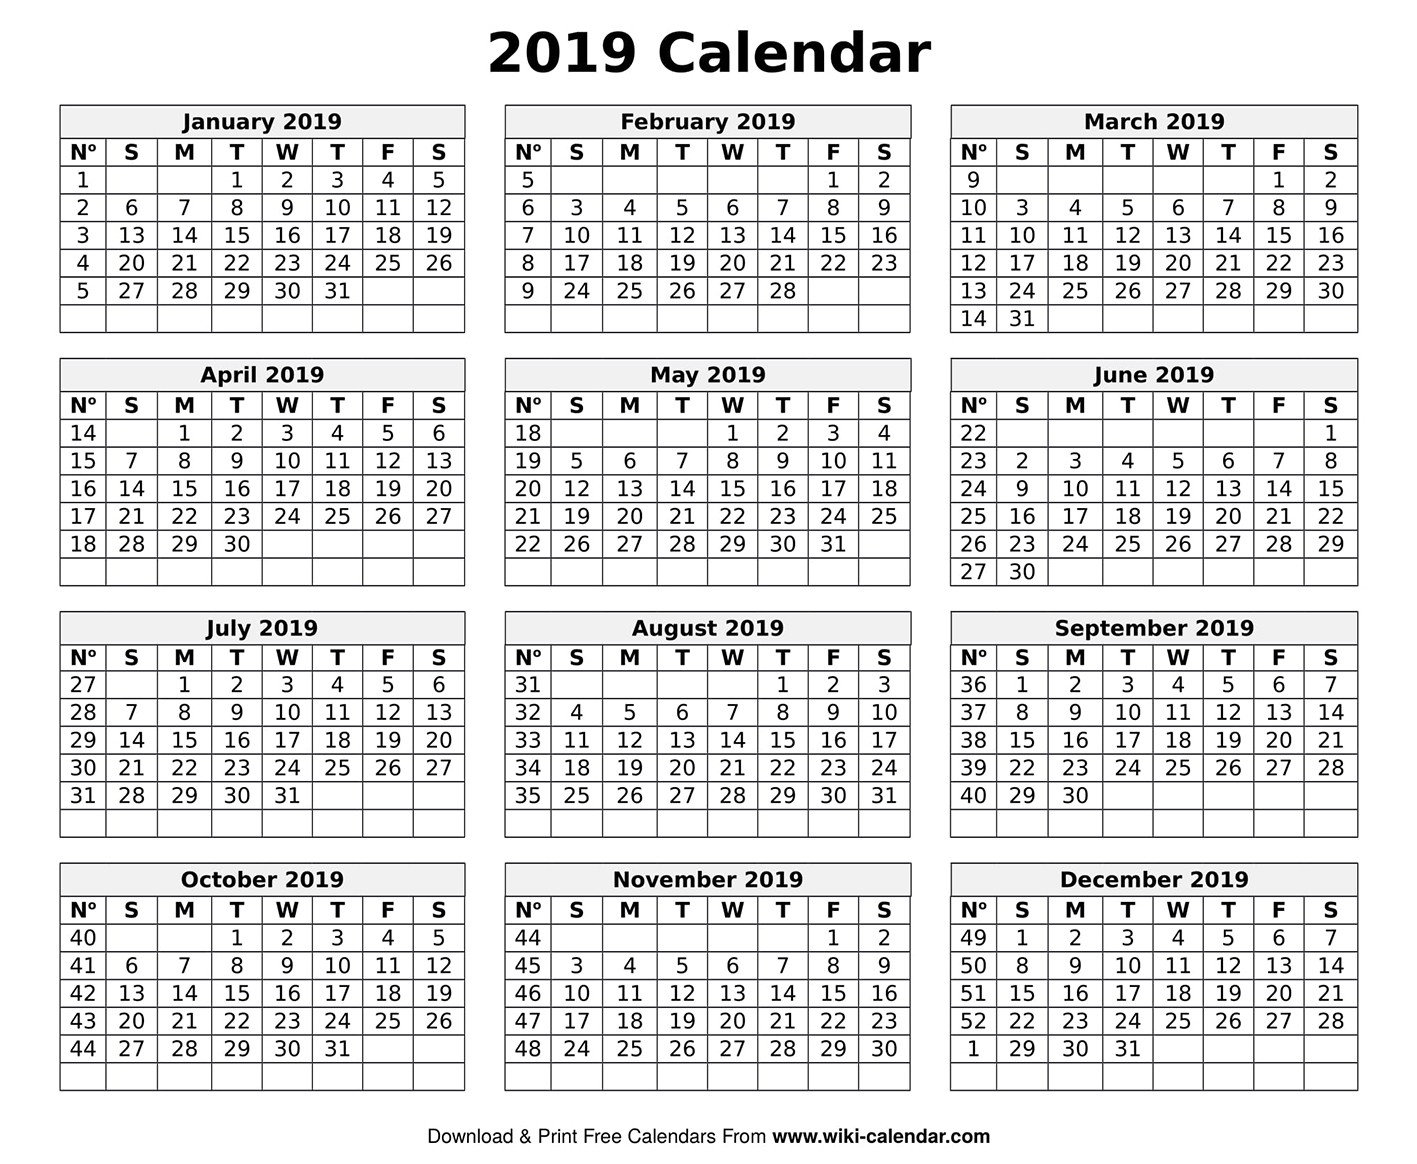 Printable Blank 2019 Calendar Templates-January 2020 Calendar Wiki